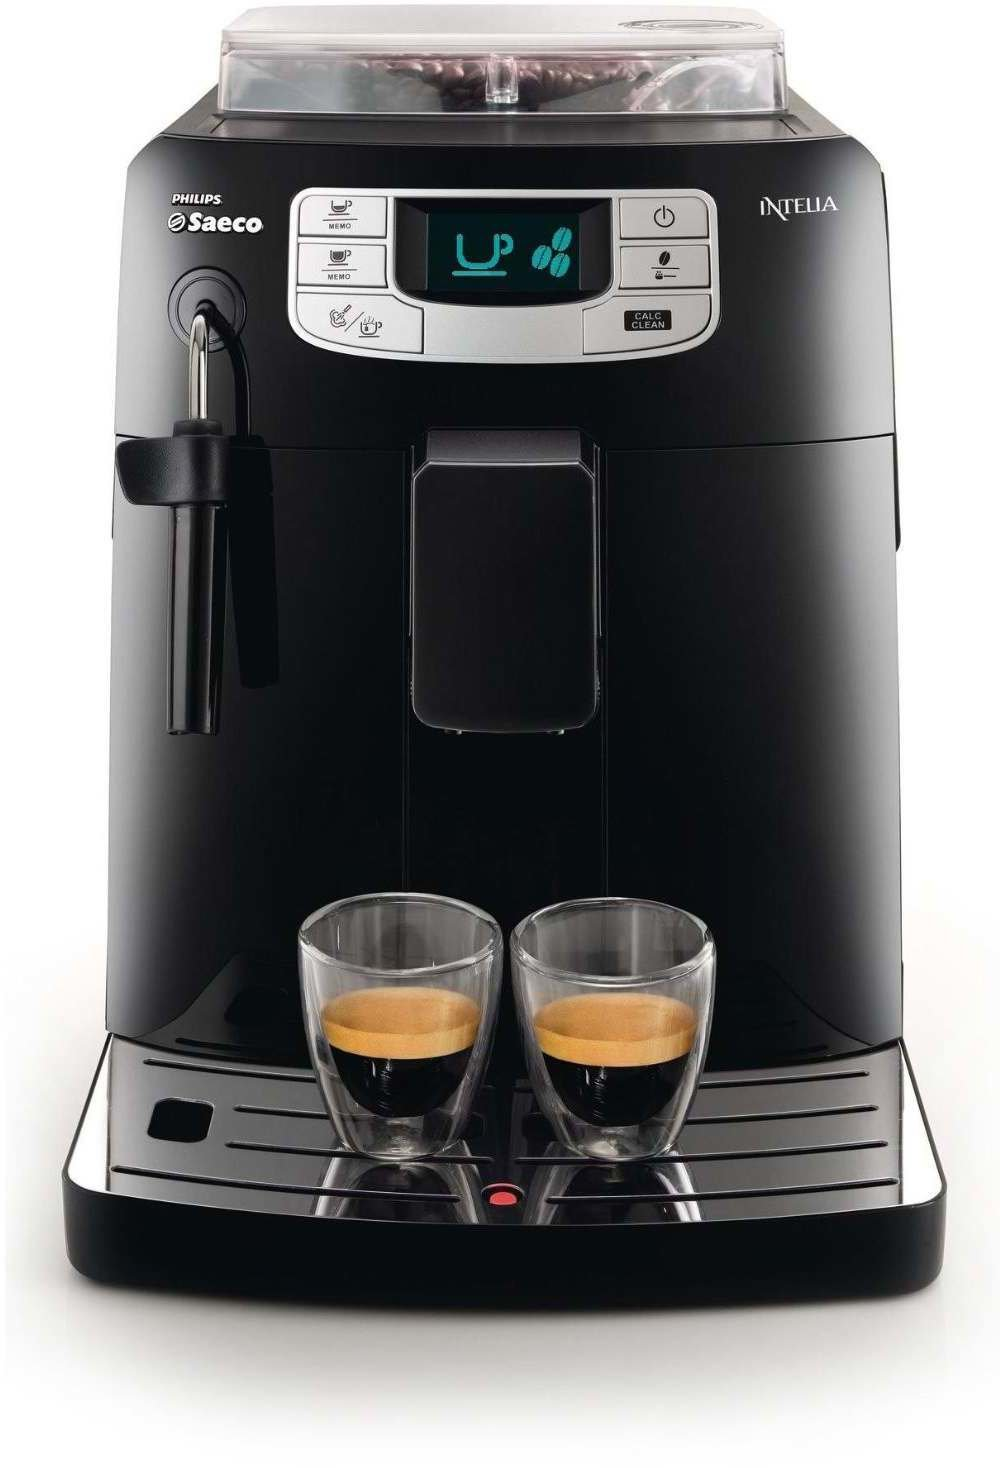 Saeco Hd 8751 11 Intelia Focus Kaffeevollautomat Im Test